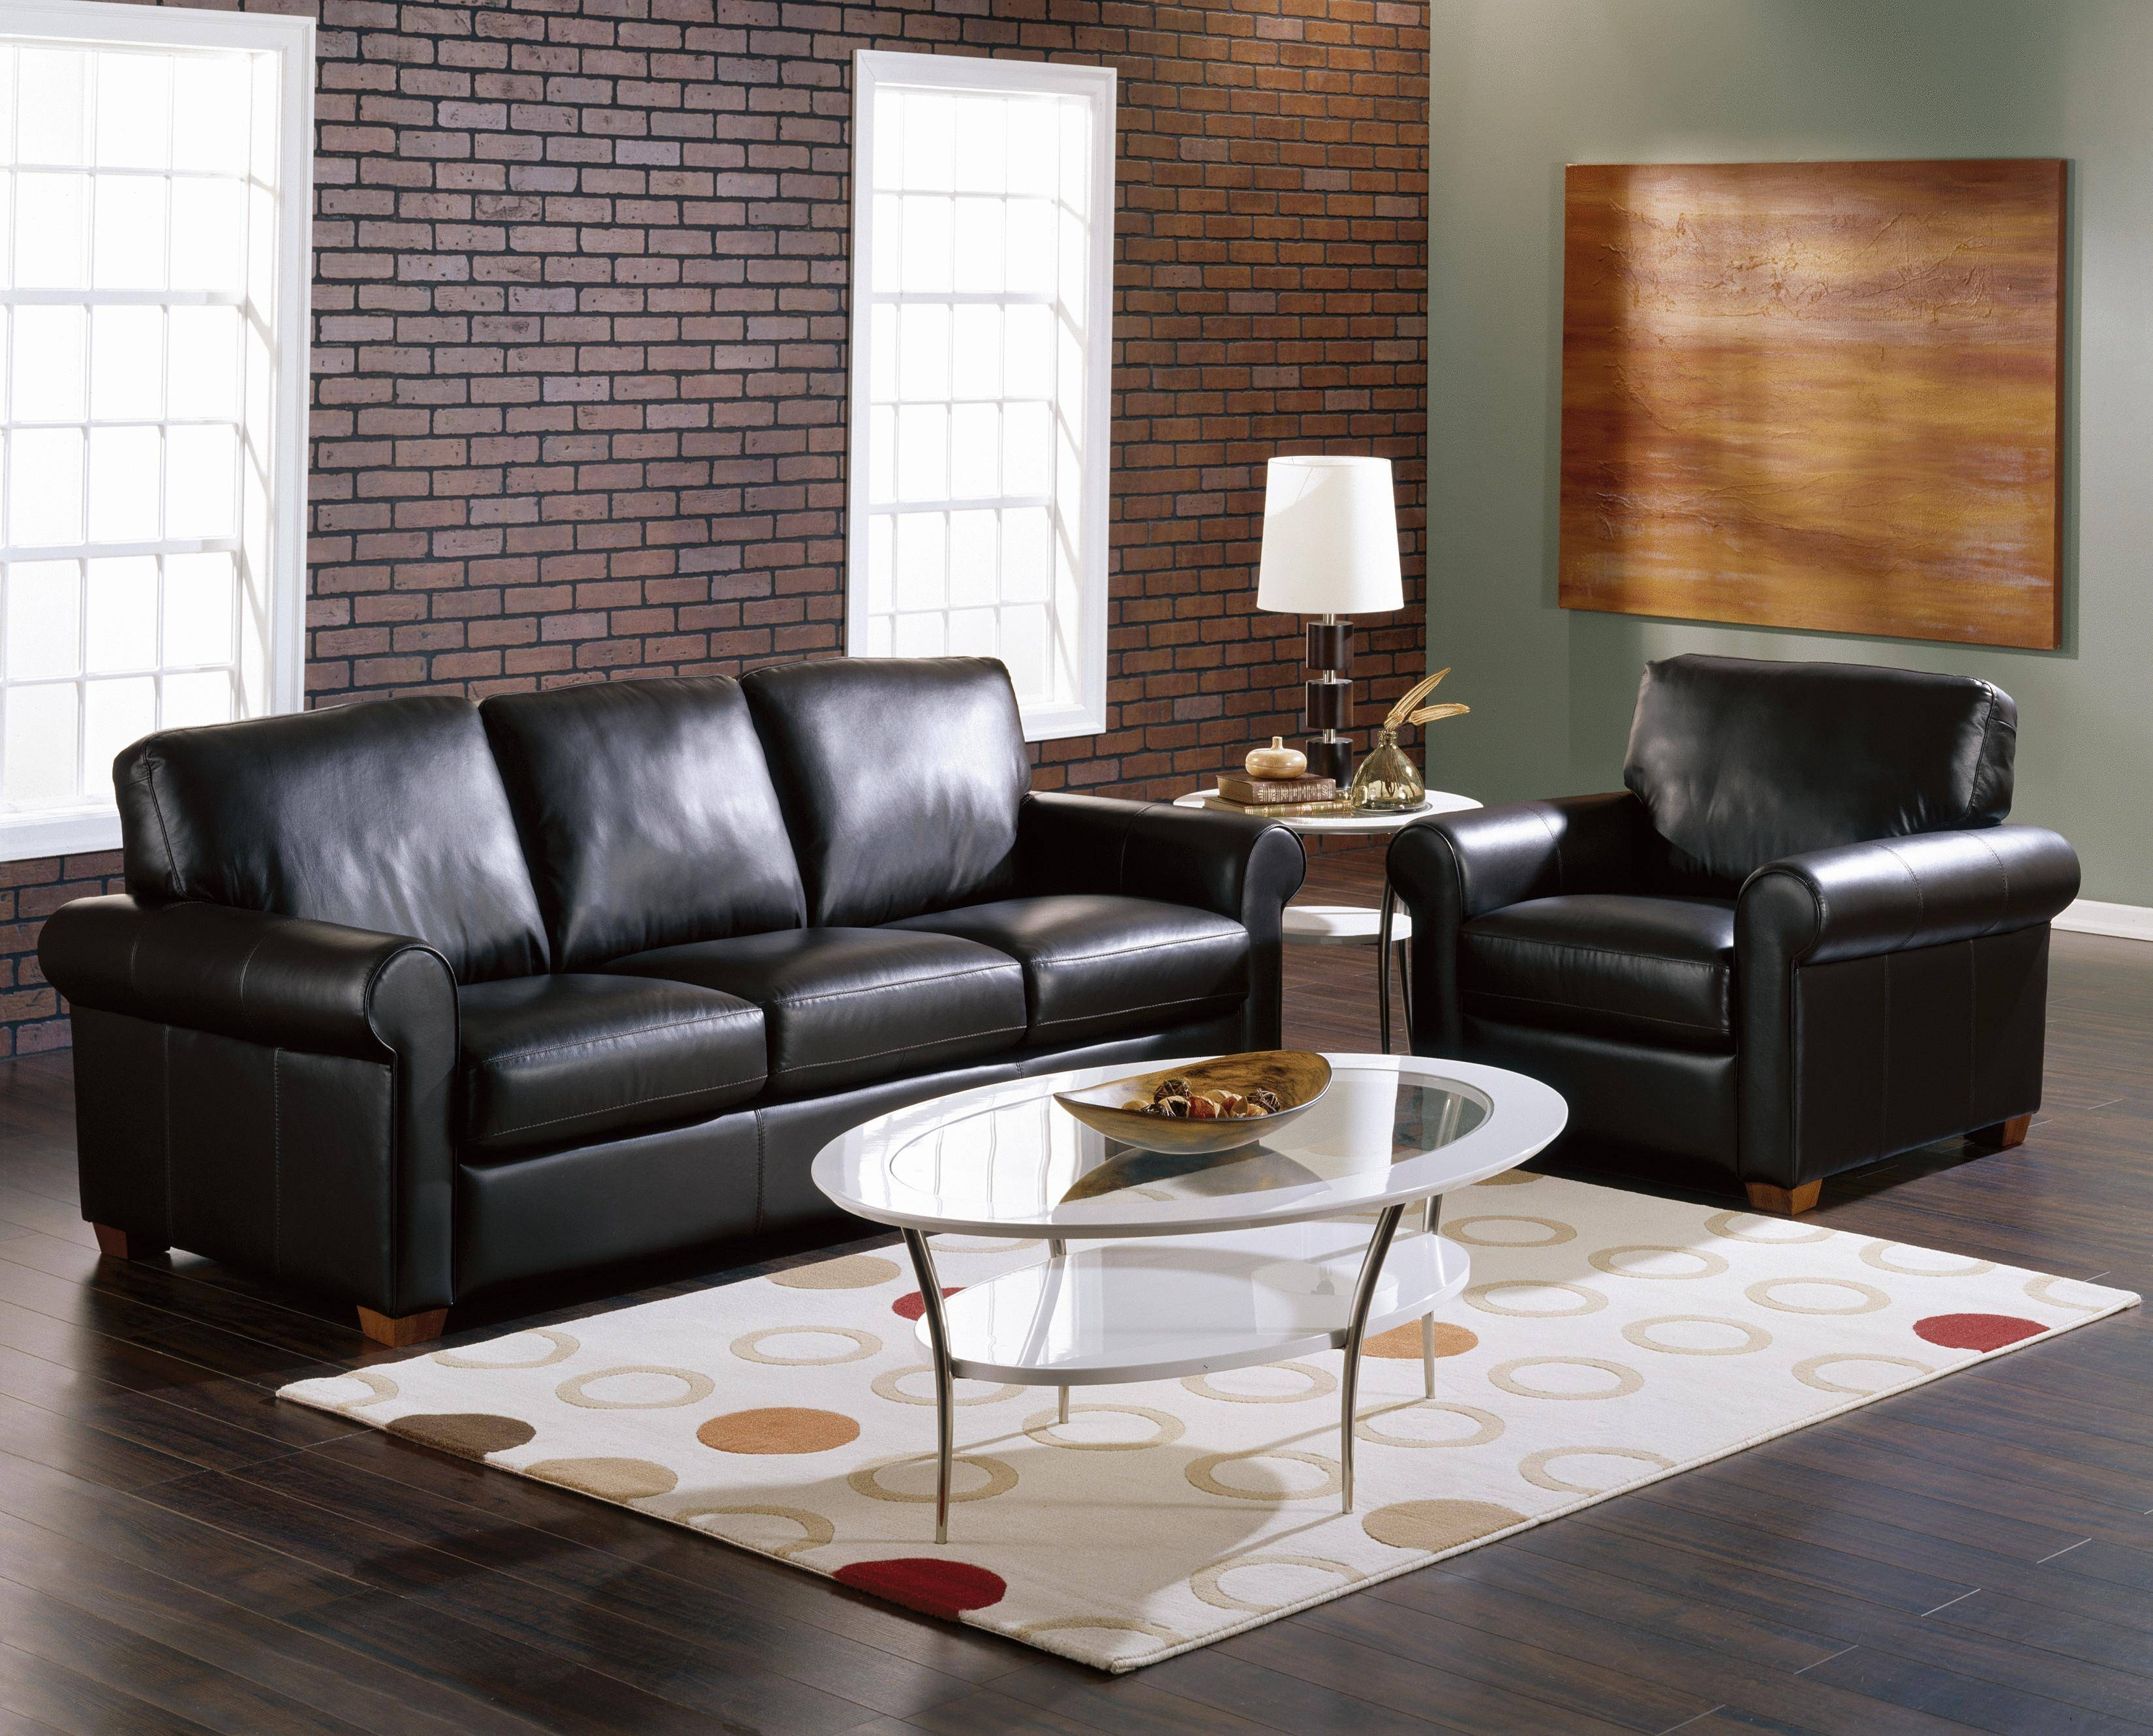 Black Leather Couches | Home Design Ideas in The Brick Leather Sofa (Image 6 of 30)